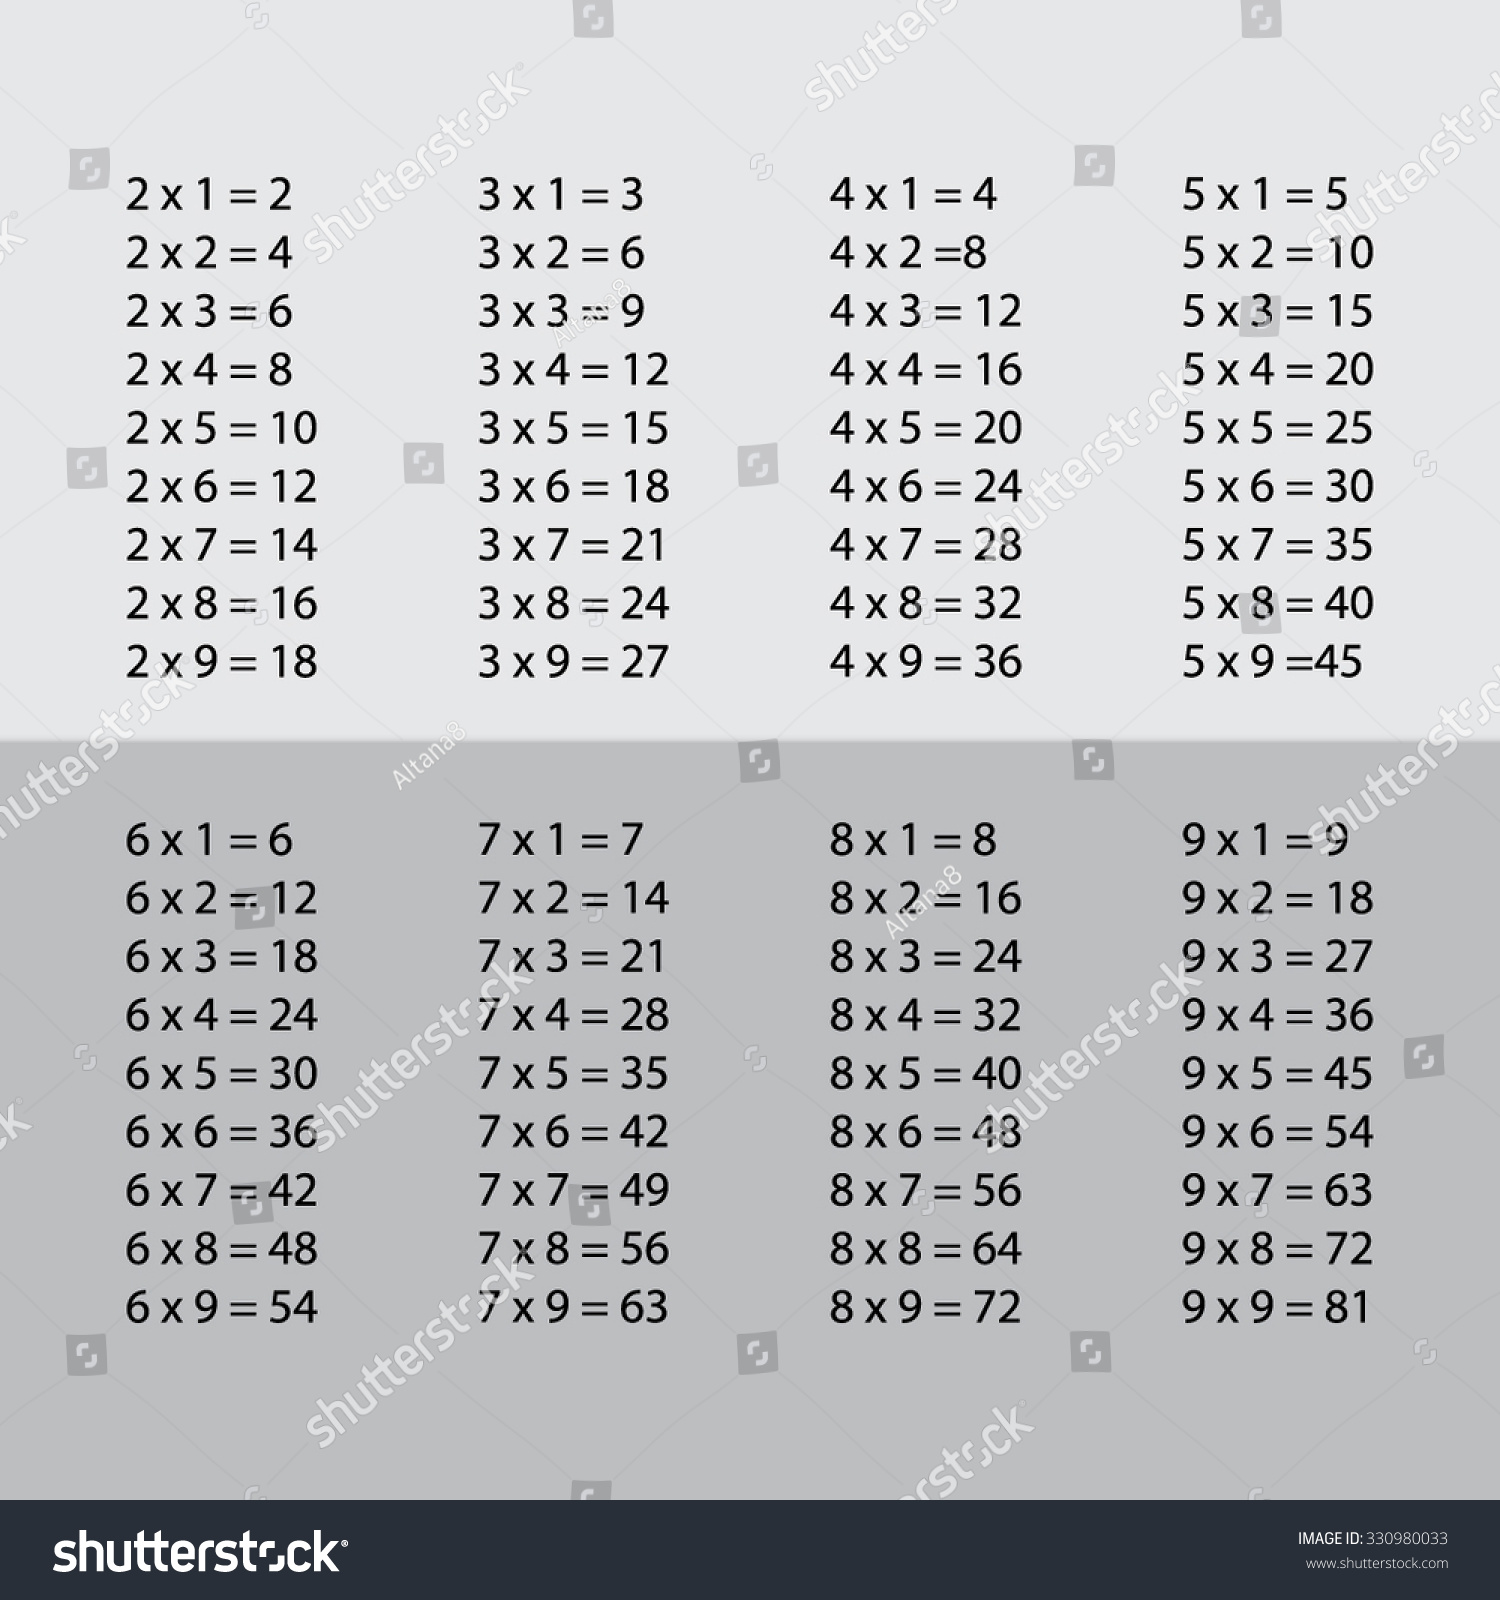 Program for multiplication table gallery periodic table images multiplication table educational material primary stock vector multiplication table educational material for primary gamestrikefo gallery gamestrikefo Choice Image